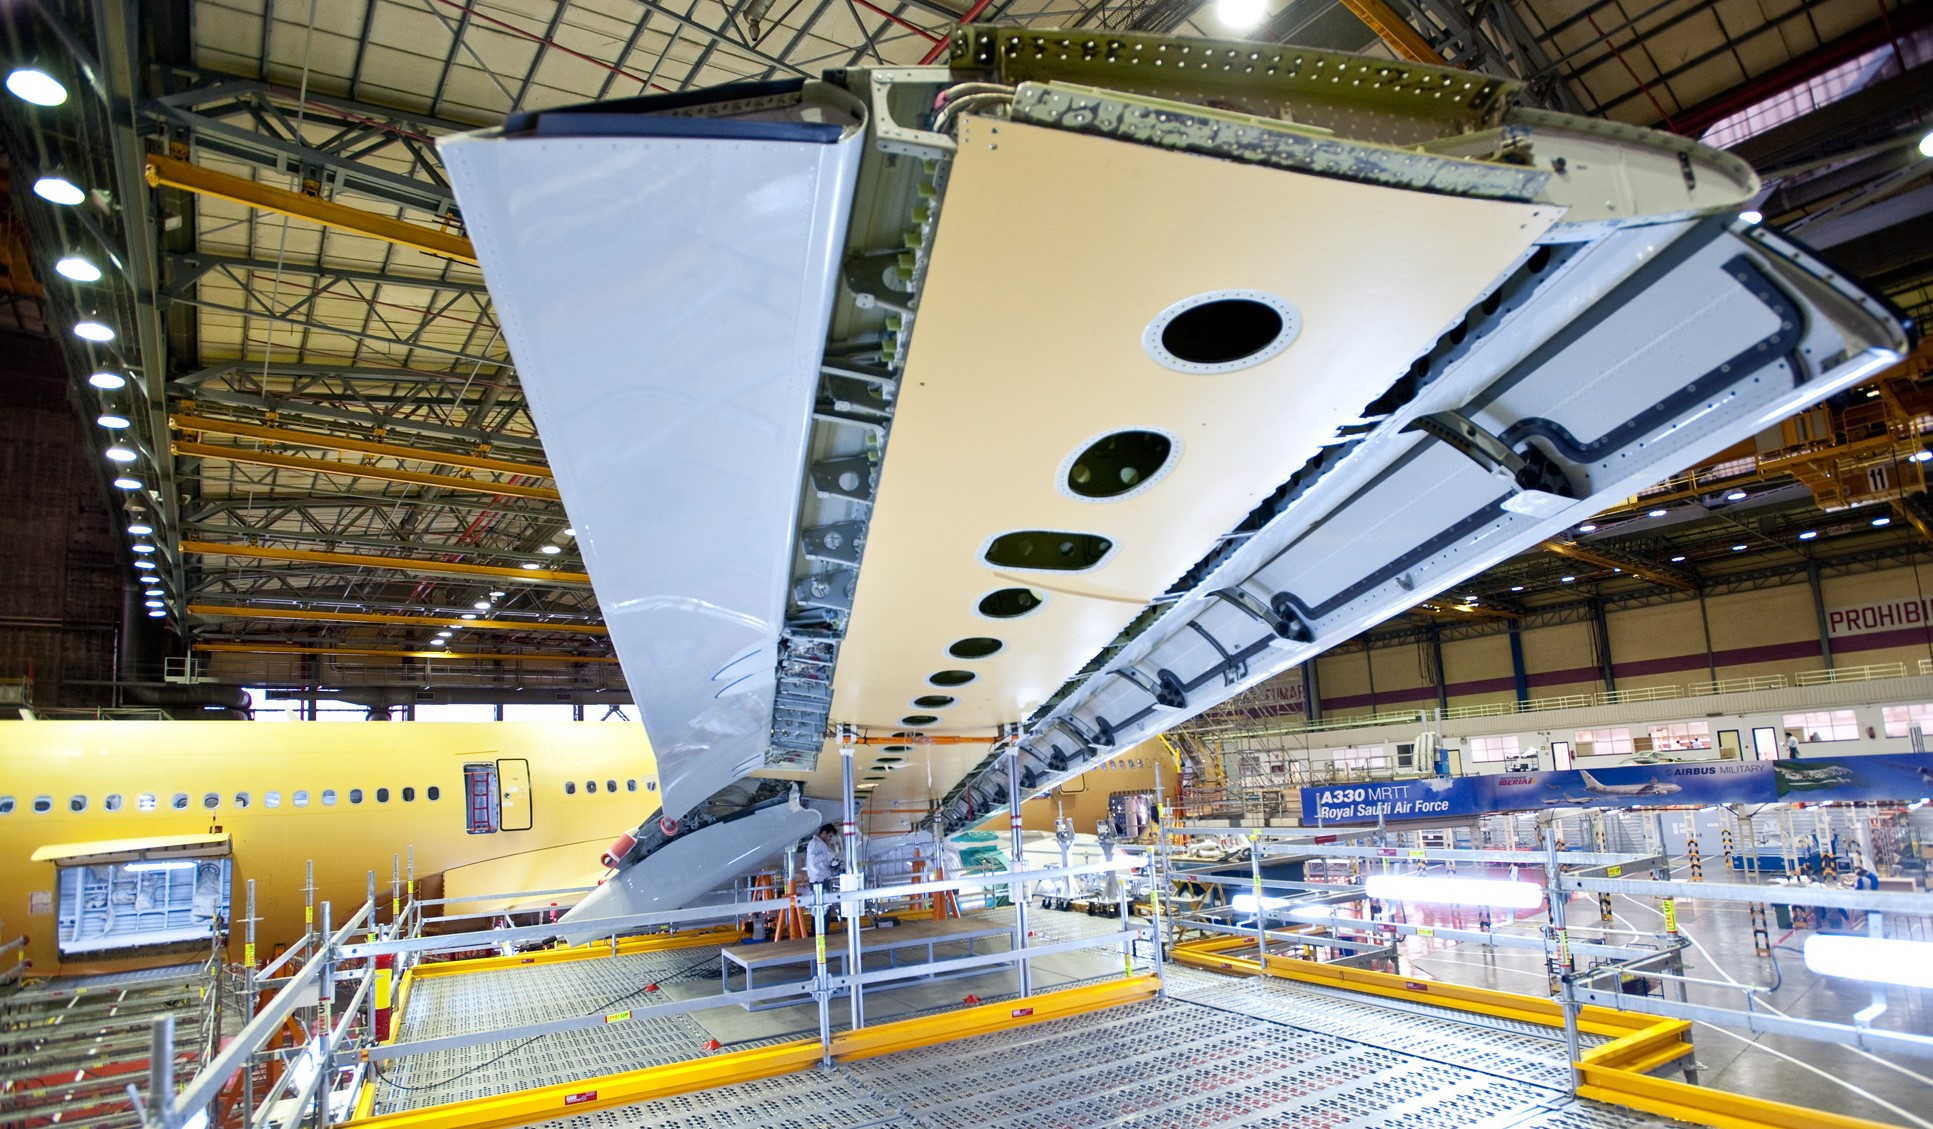 An A330 wing being built in a factory